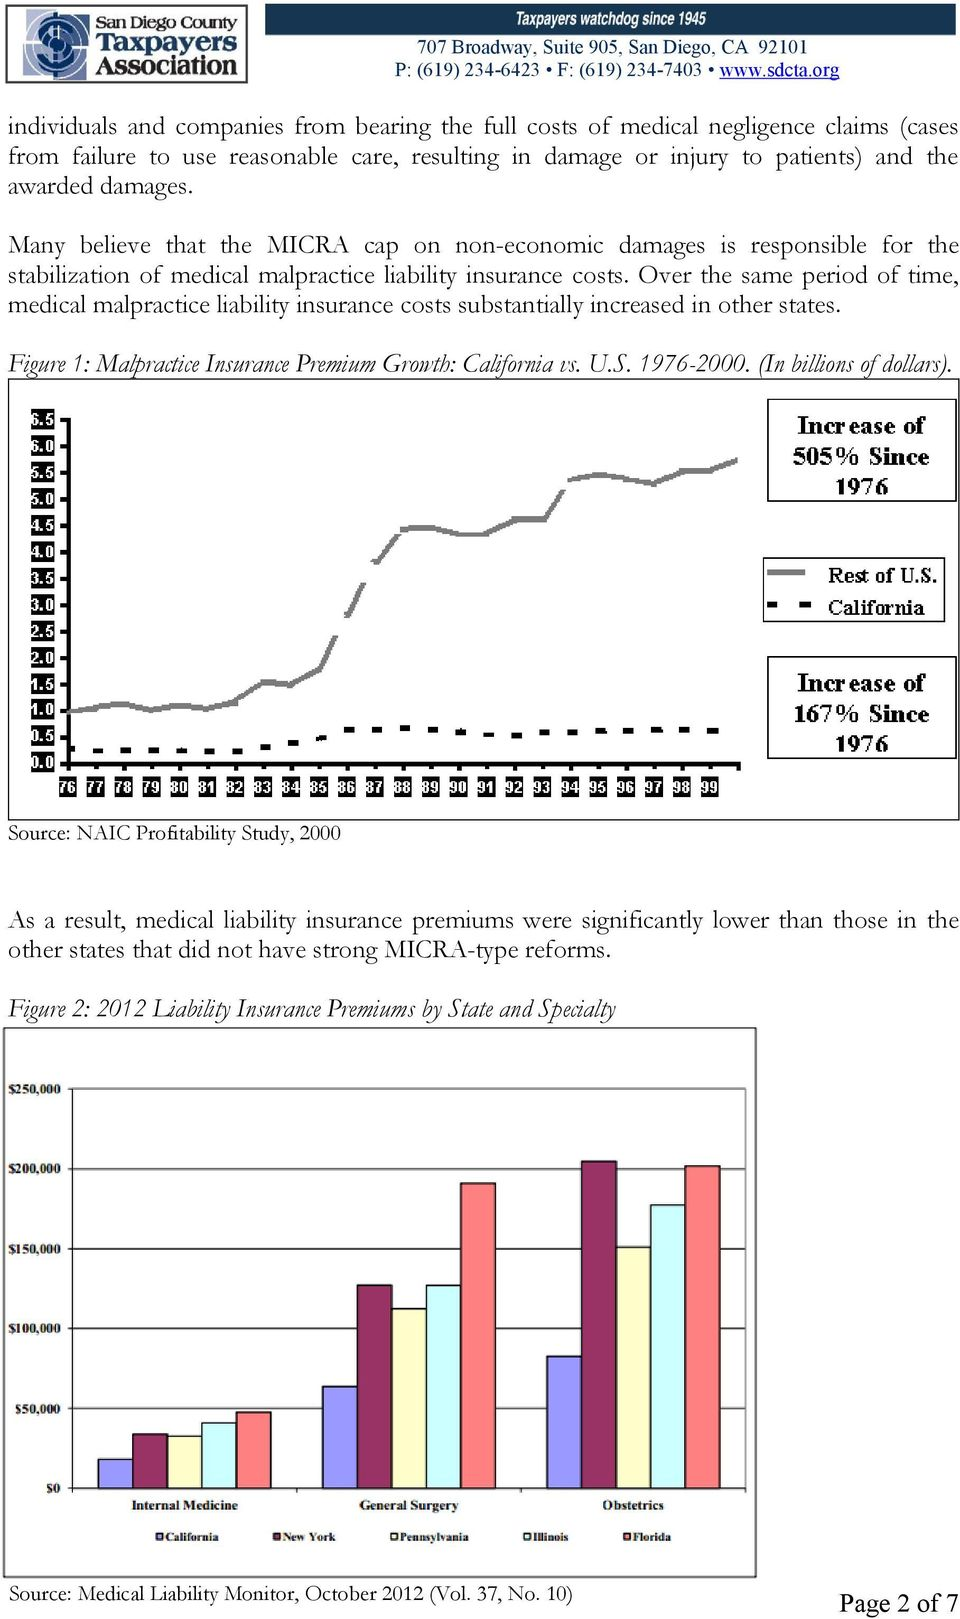 Over the same period of time, medical malpractice liability insurance costs substantially increased in other states. Figure 1: Malpractice Insurance Premium Growth: California vs. U.S. 1976-2000.